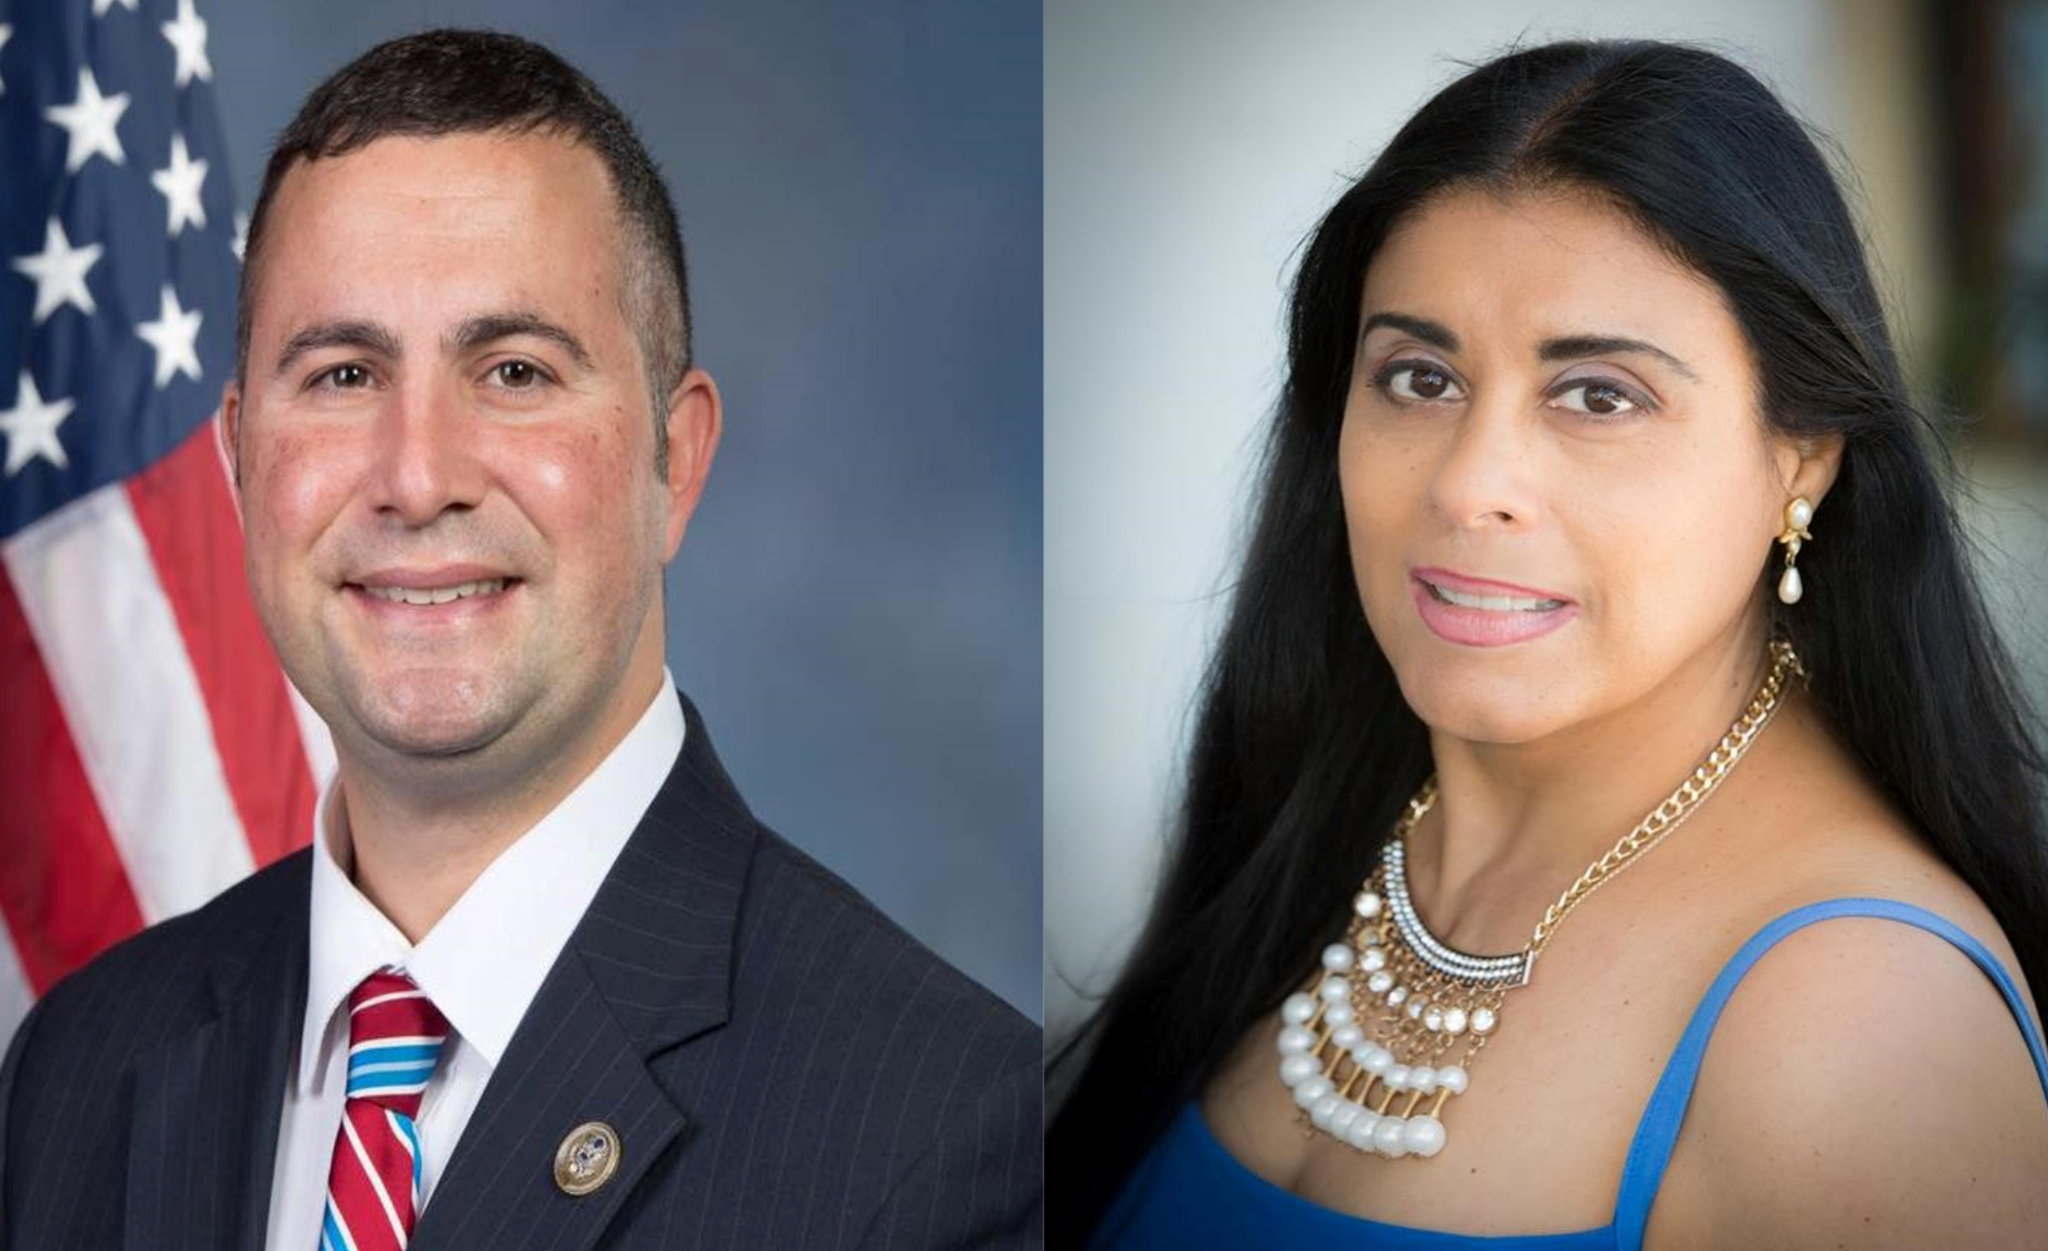 Congressman Darren Soto (D-09, left) has endorsed Supervisor Daisy Morales for Florida House District 48. Photos used with permission.